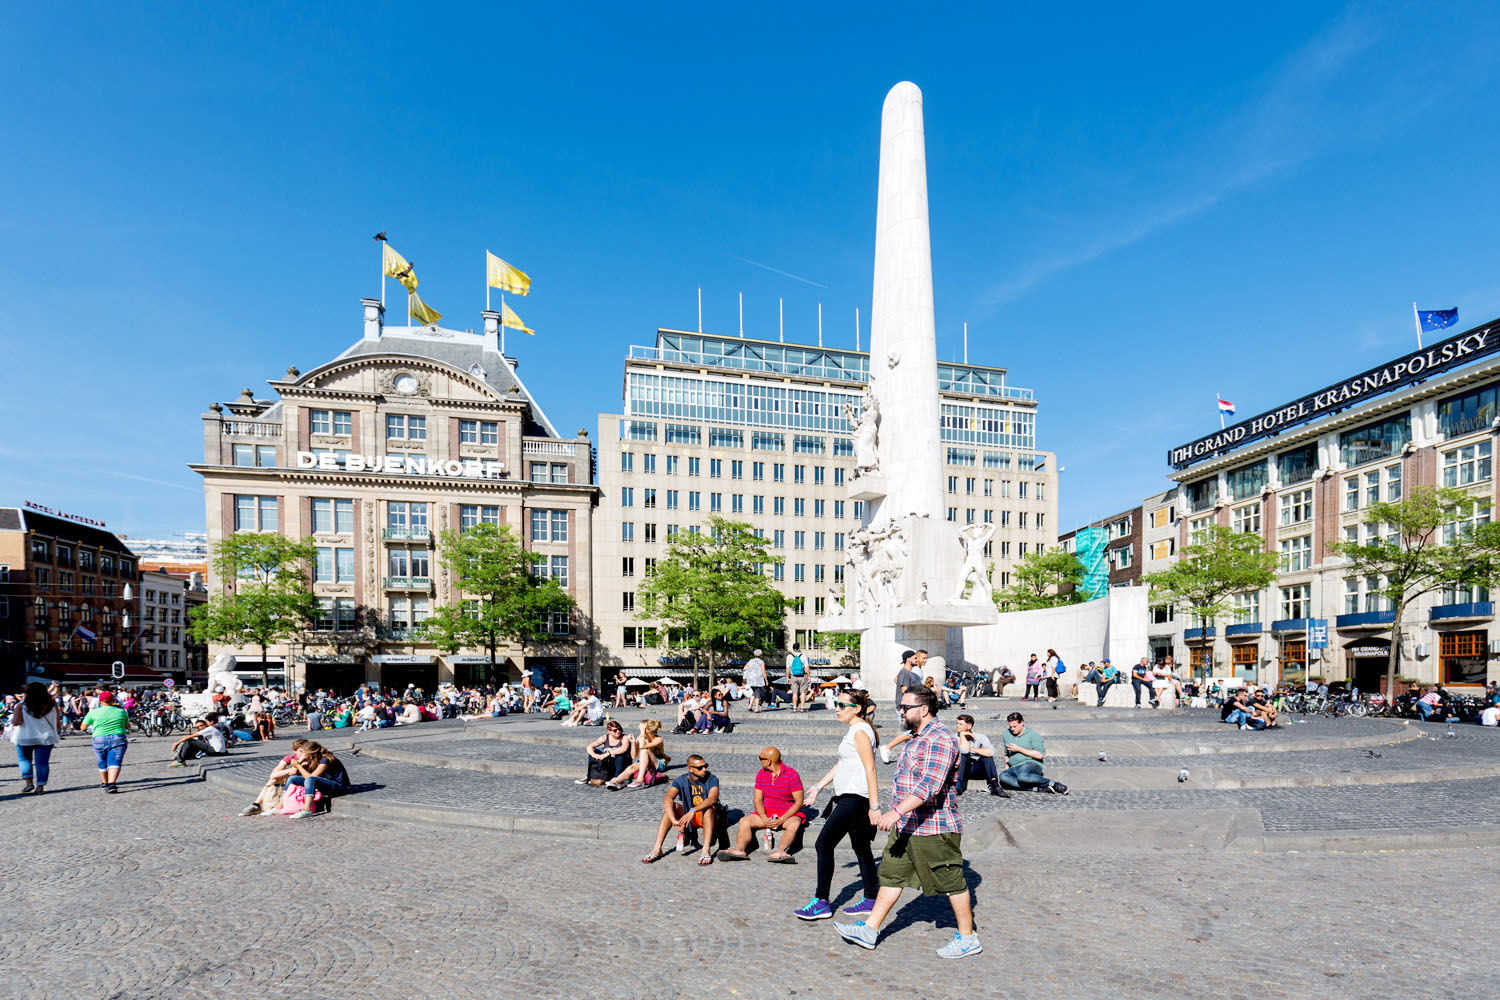 National Monument on Dam Square 529841536